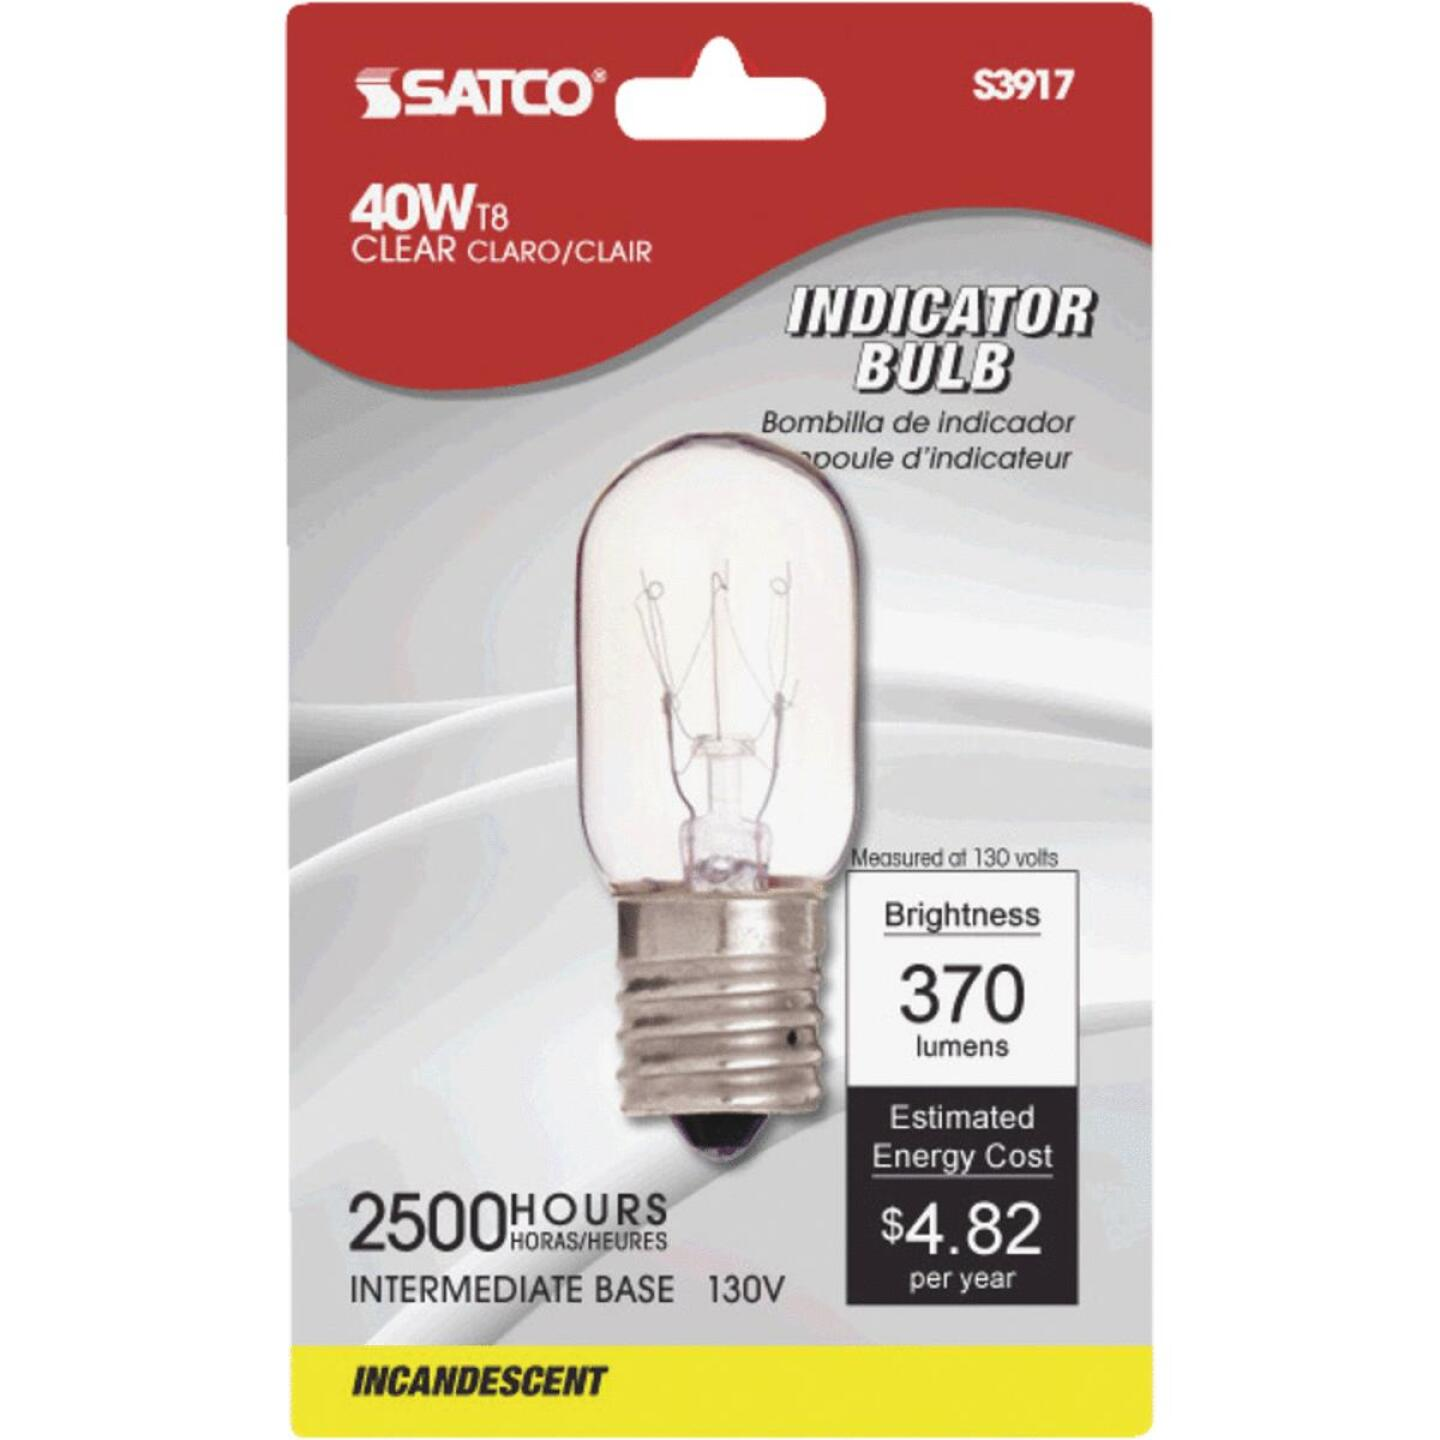 Satco 40W Clear Intermediate Base T8 Incandescent Indicator Appliance Light Bulb Image 1